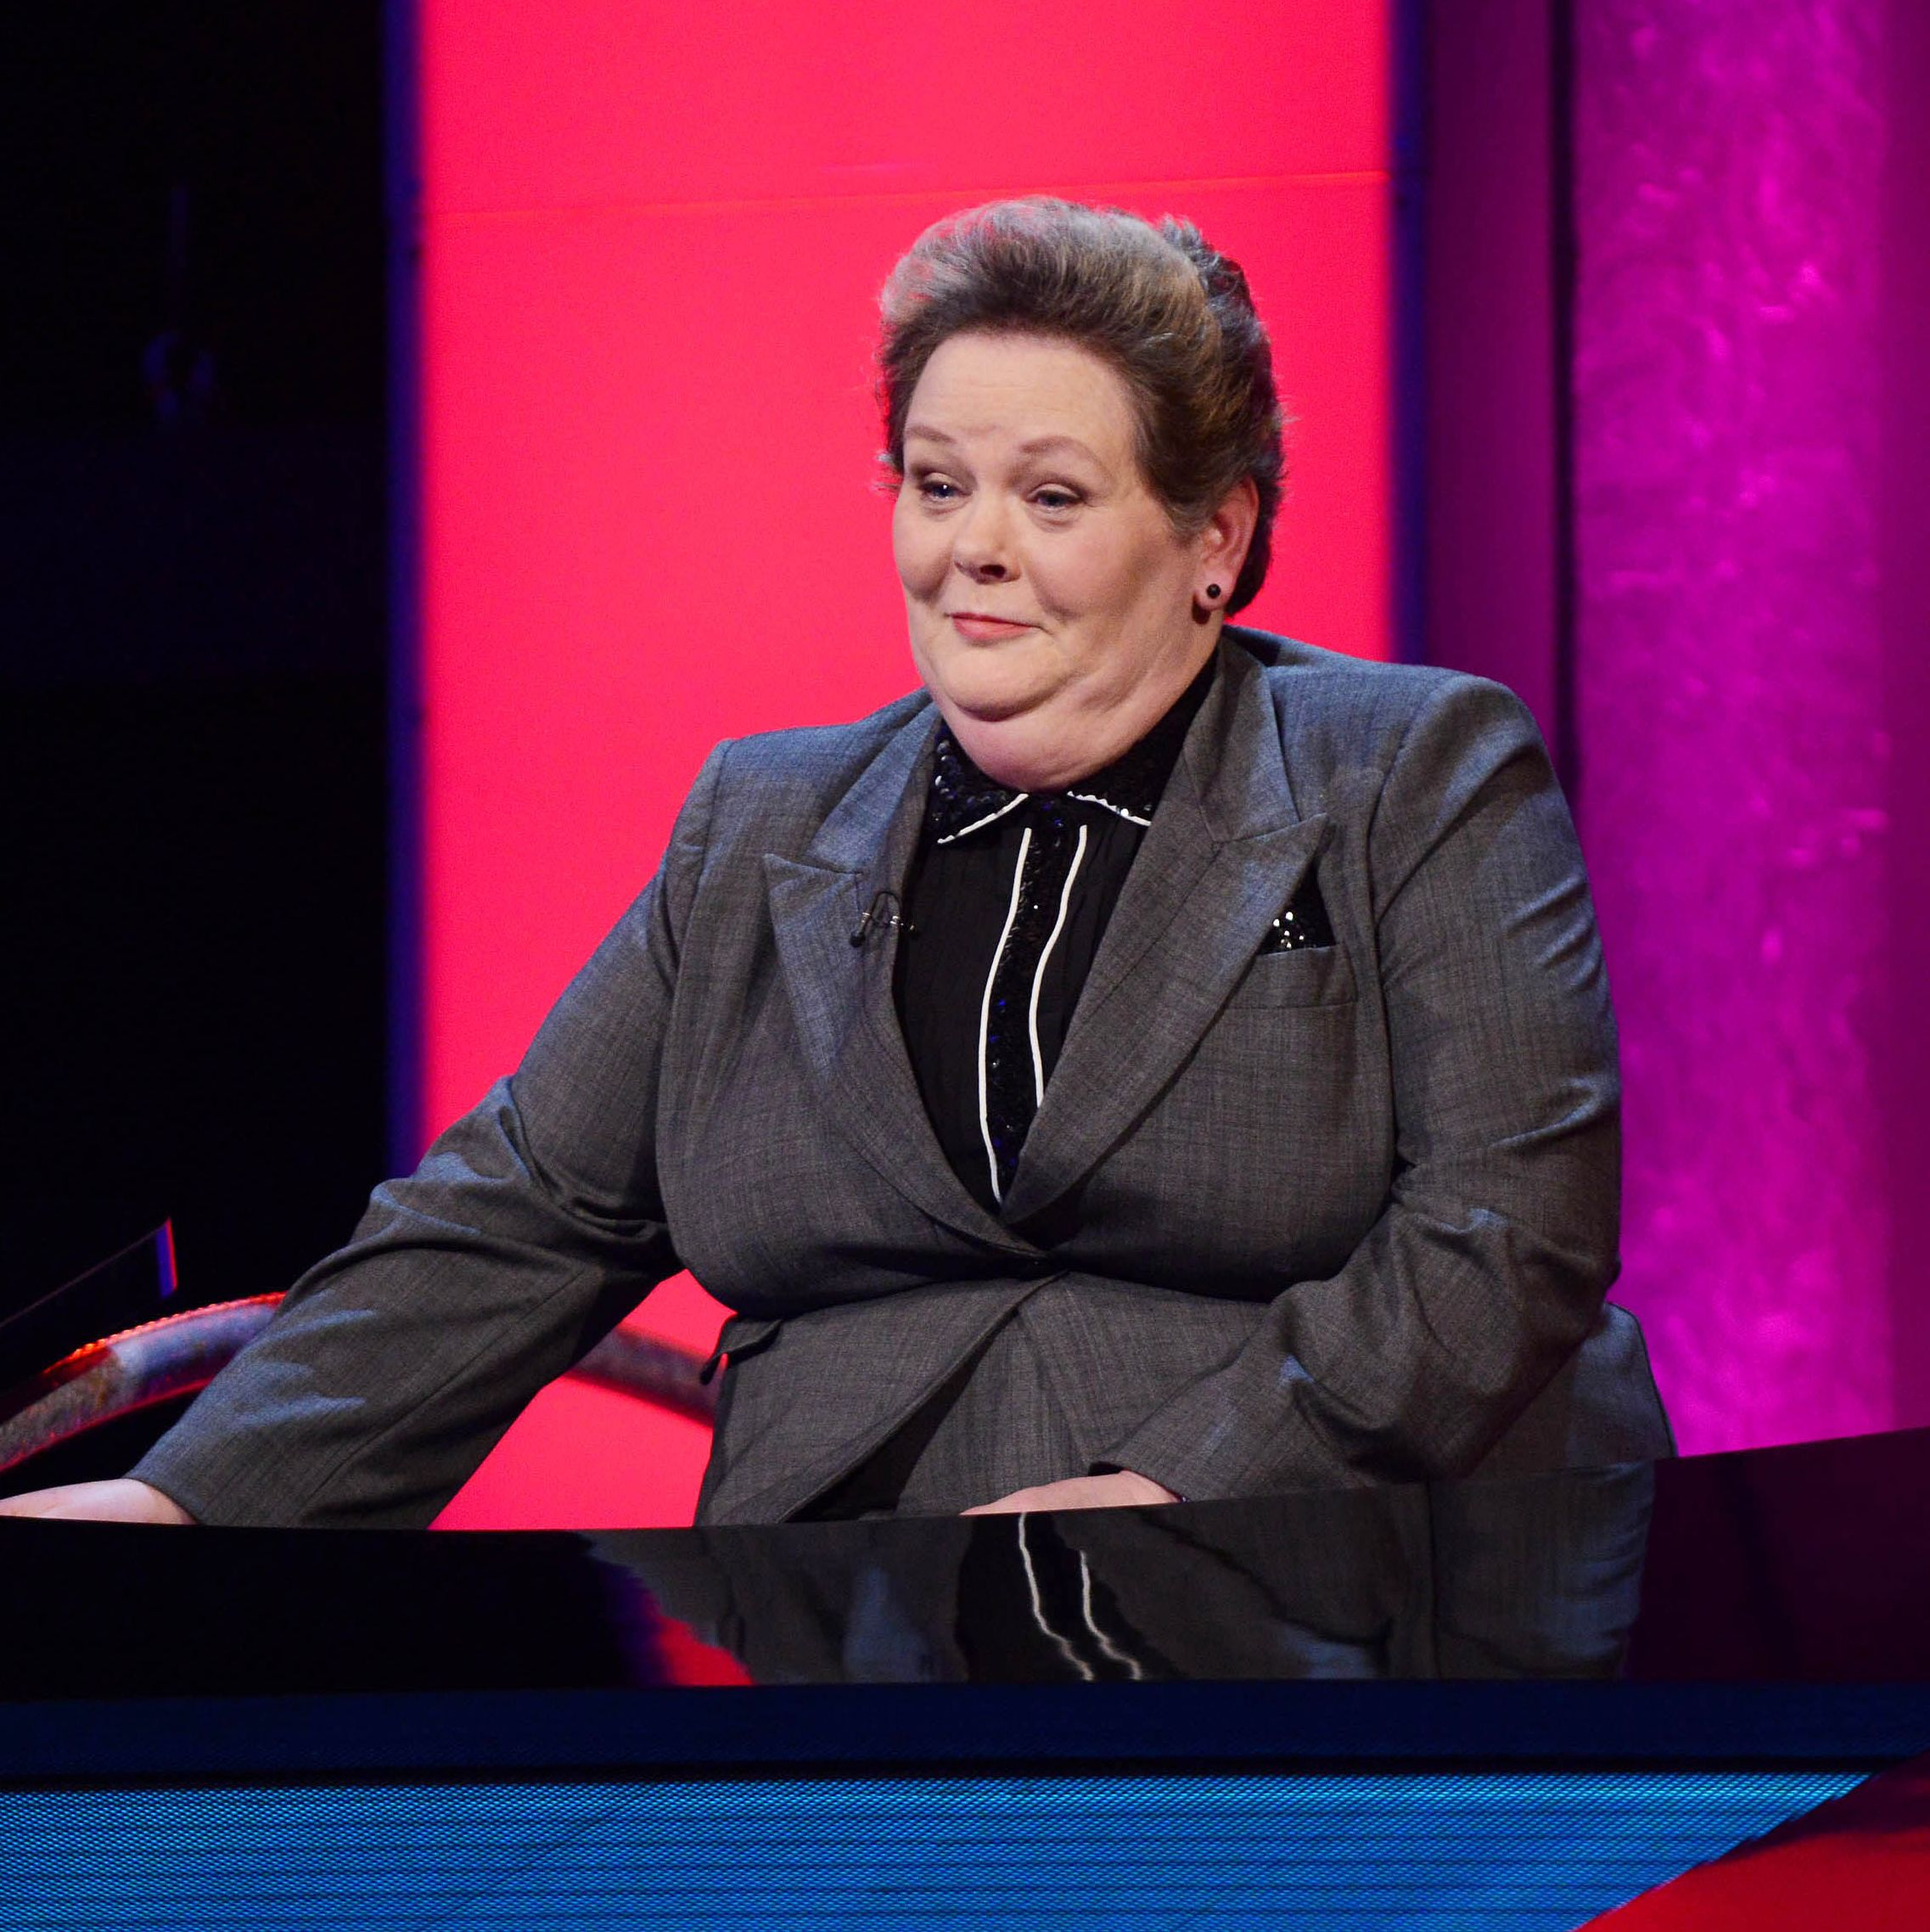 The Chase's Anne Hegerty threatened with suspension from ITV over her tweet to troll